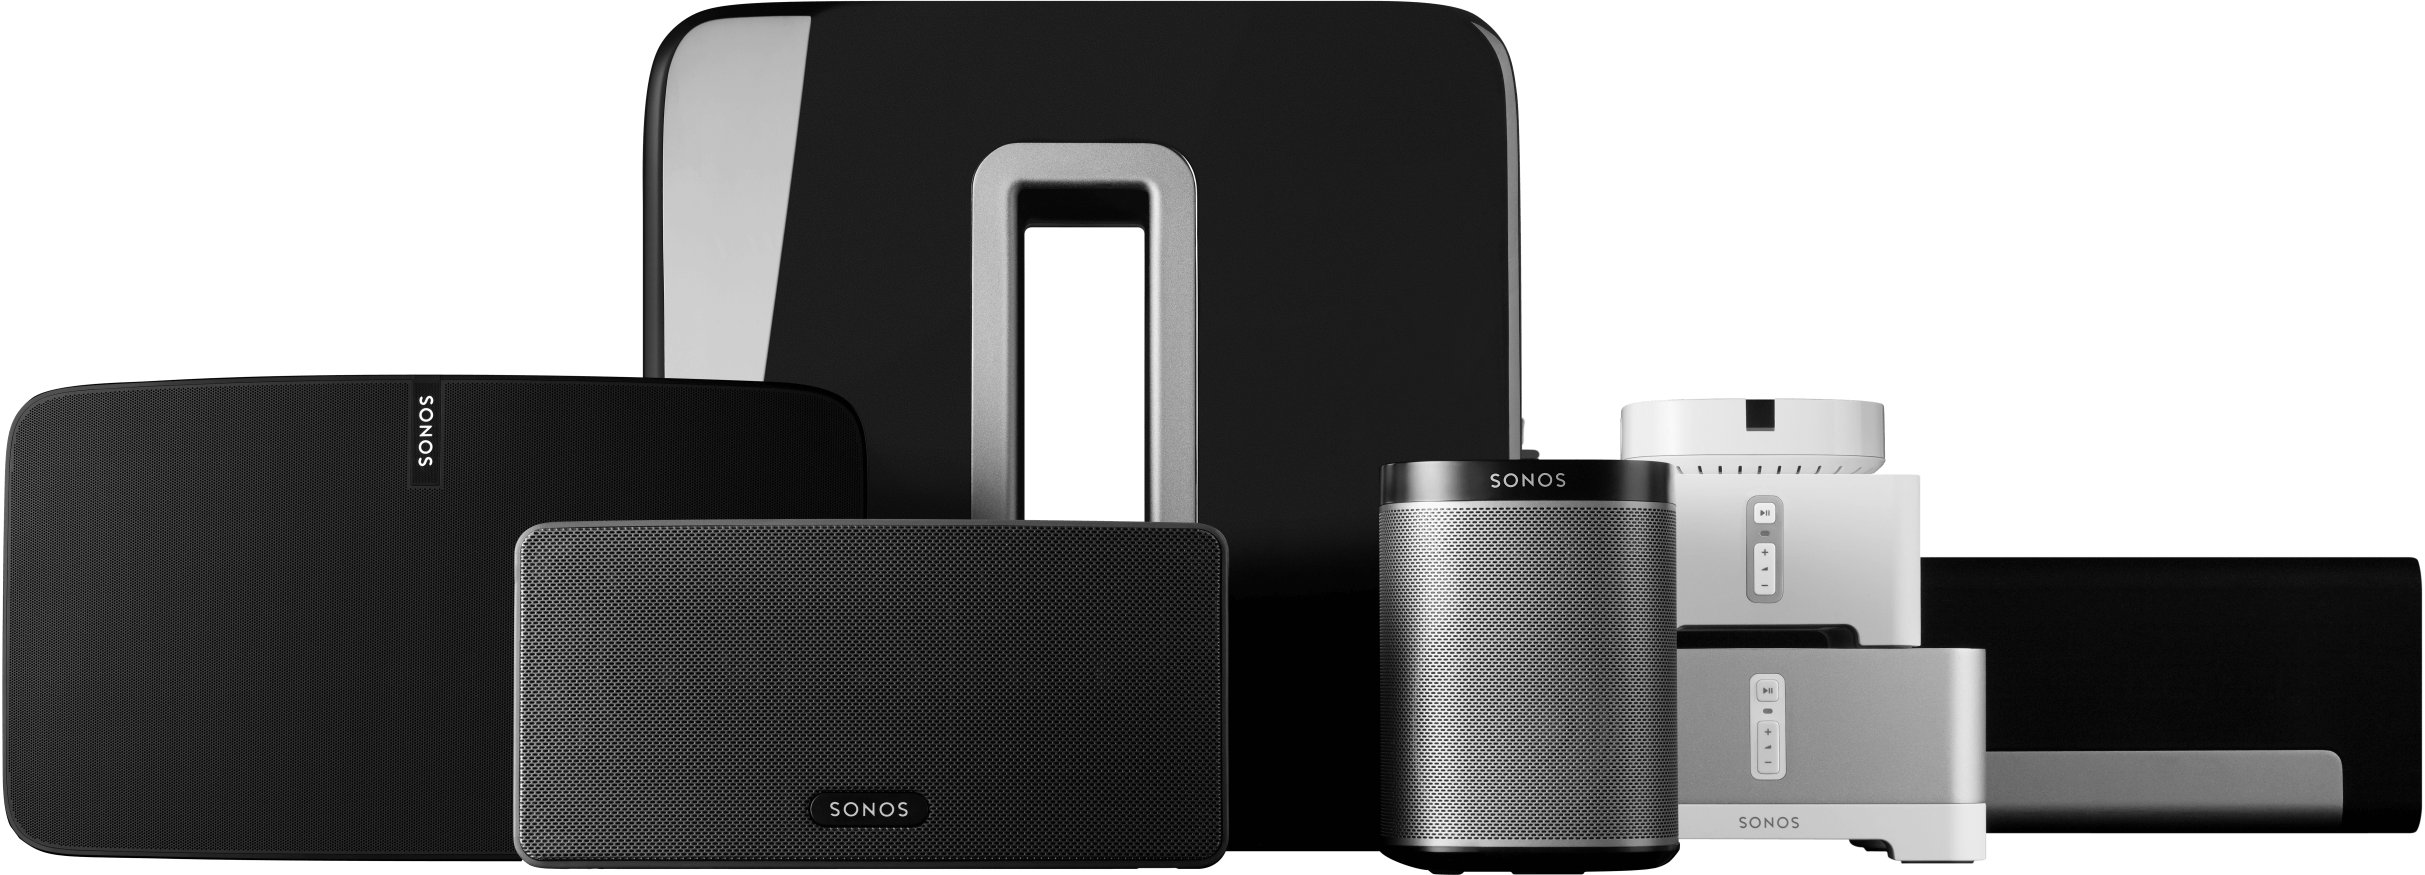 Sonos New Products Thailand.png